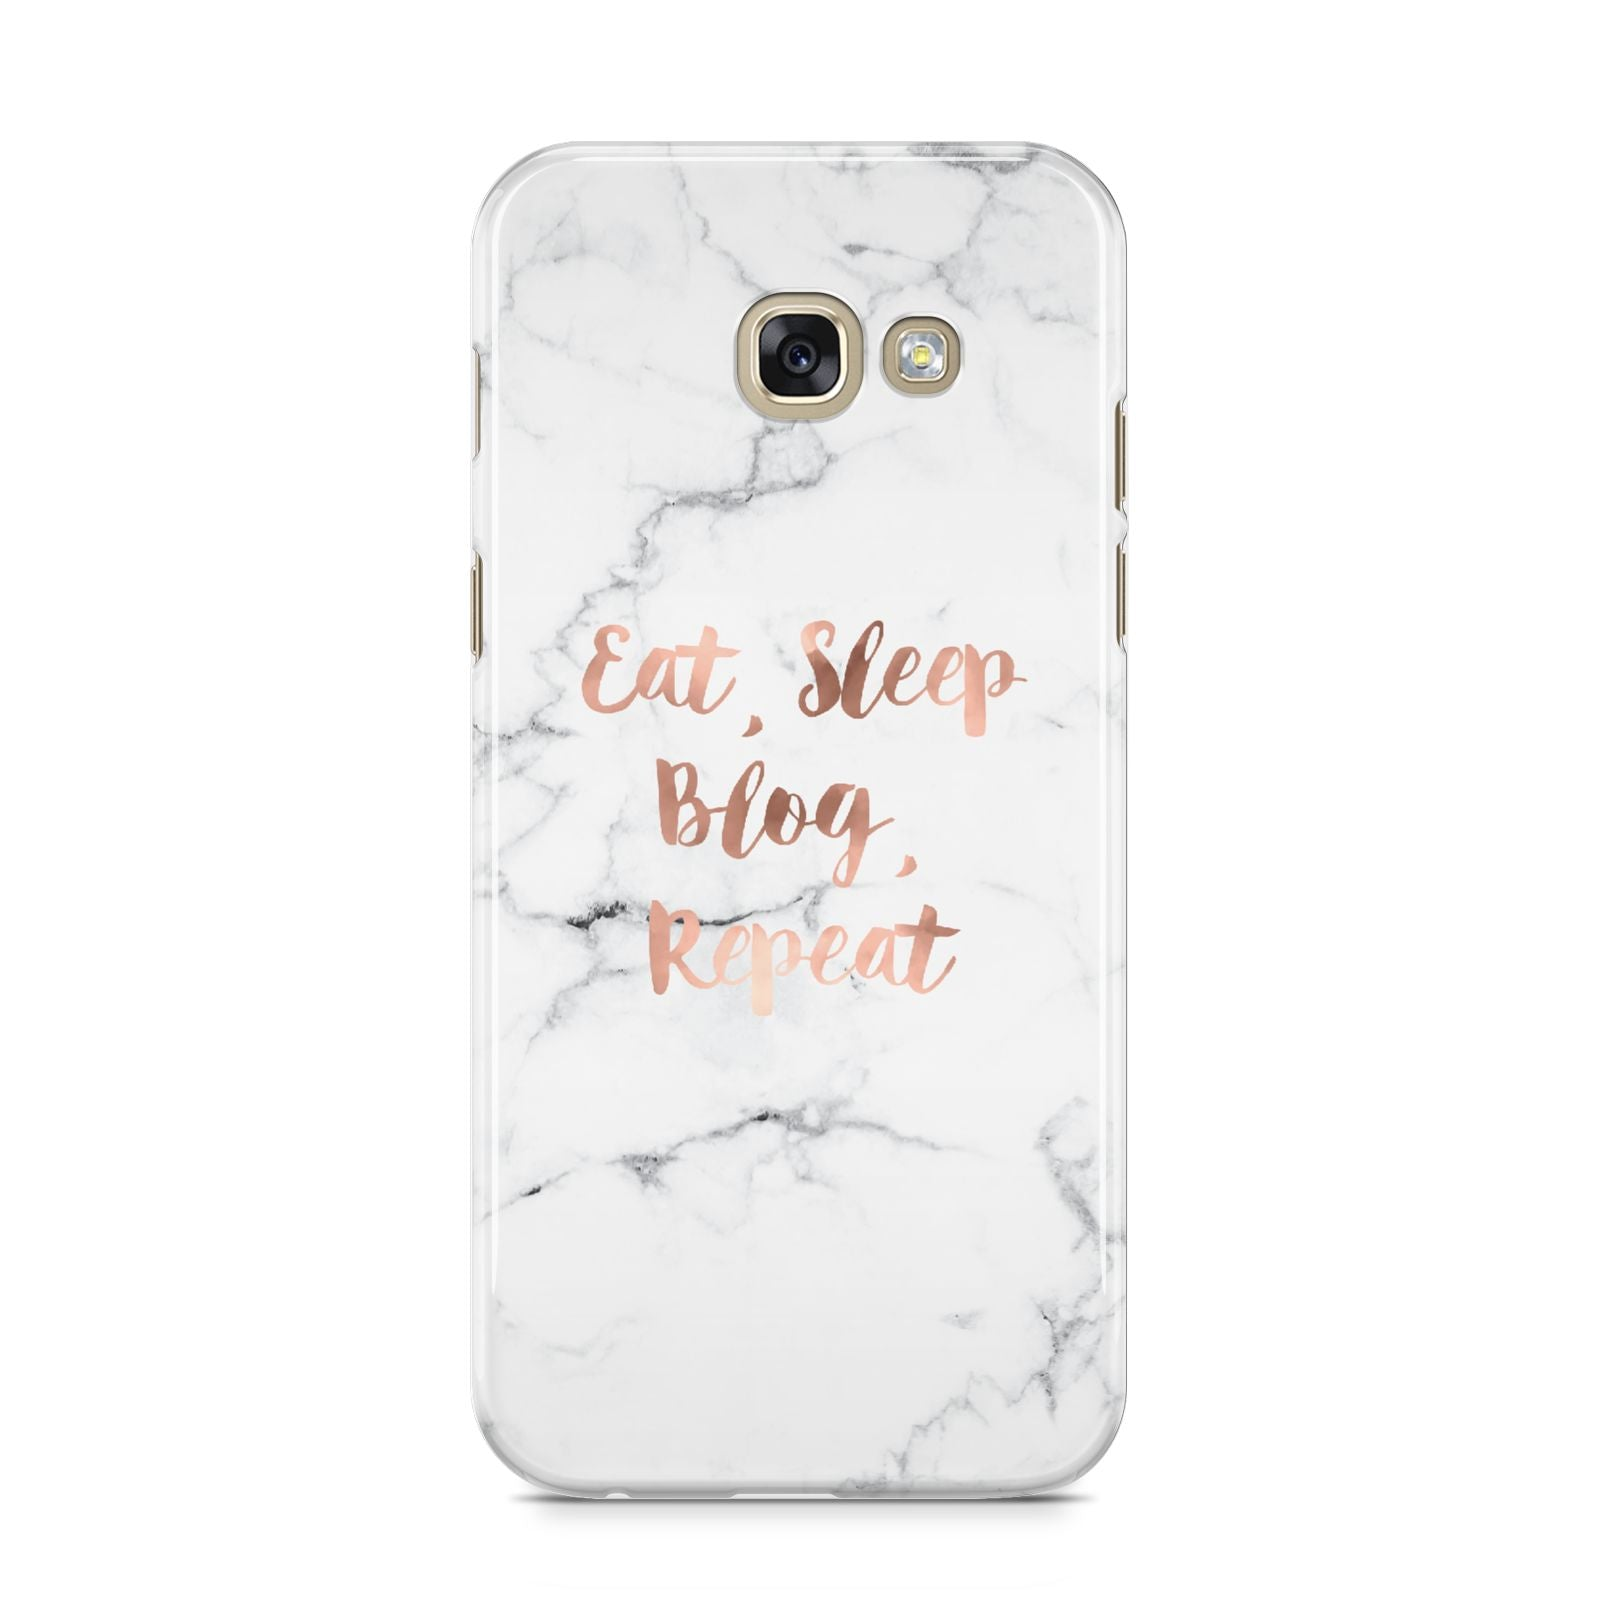 Eat Sleep Blog Repeat Marble Effect Samsung Galaxy A5 2017 Case on gold phone